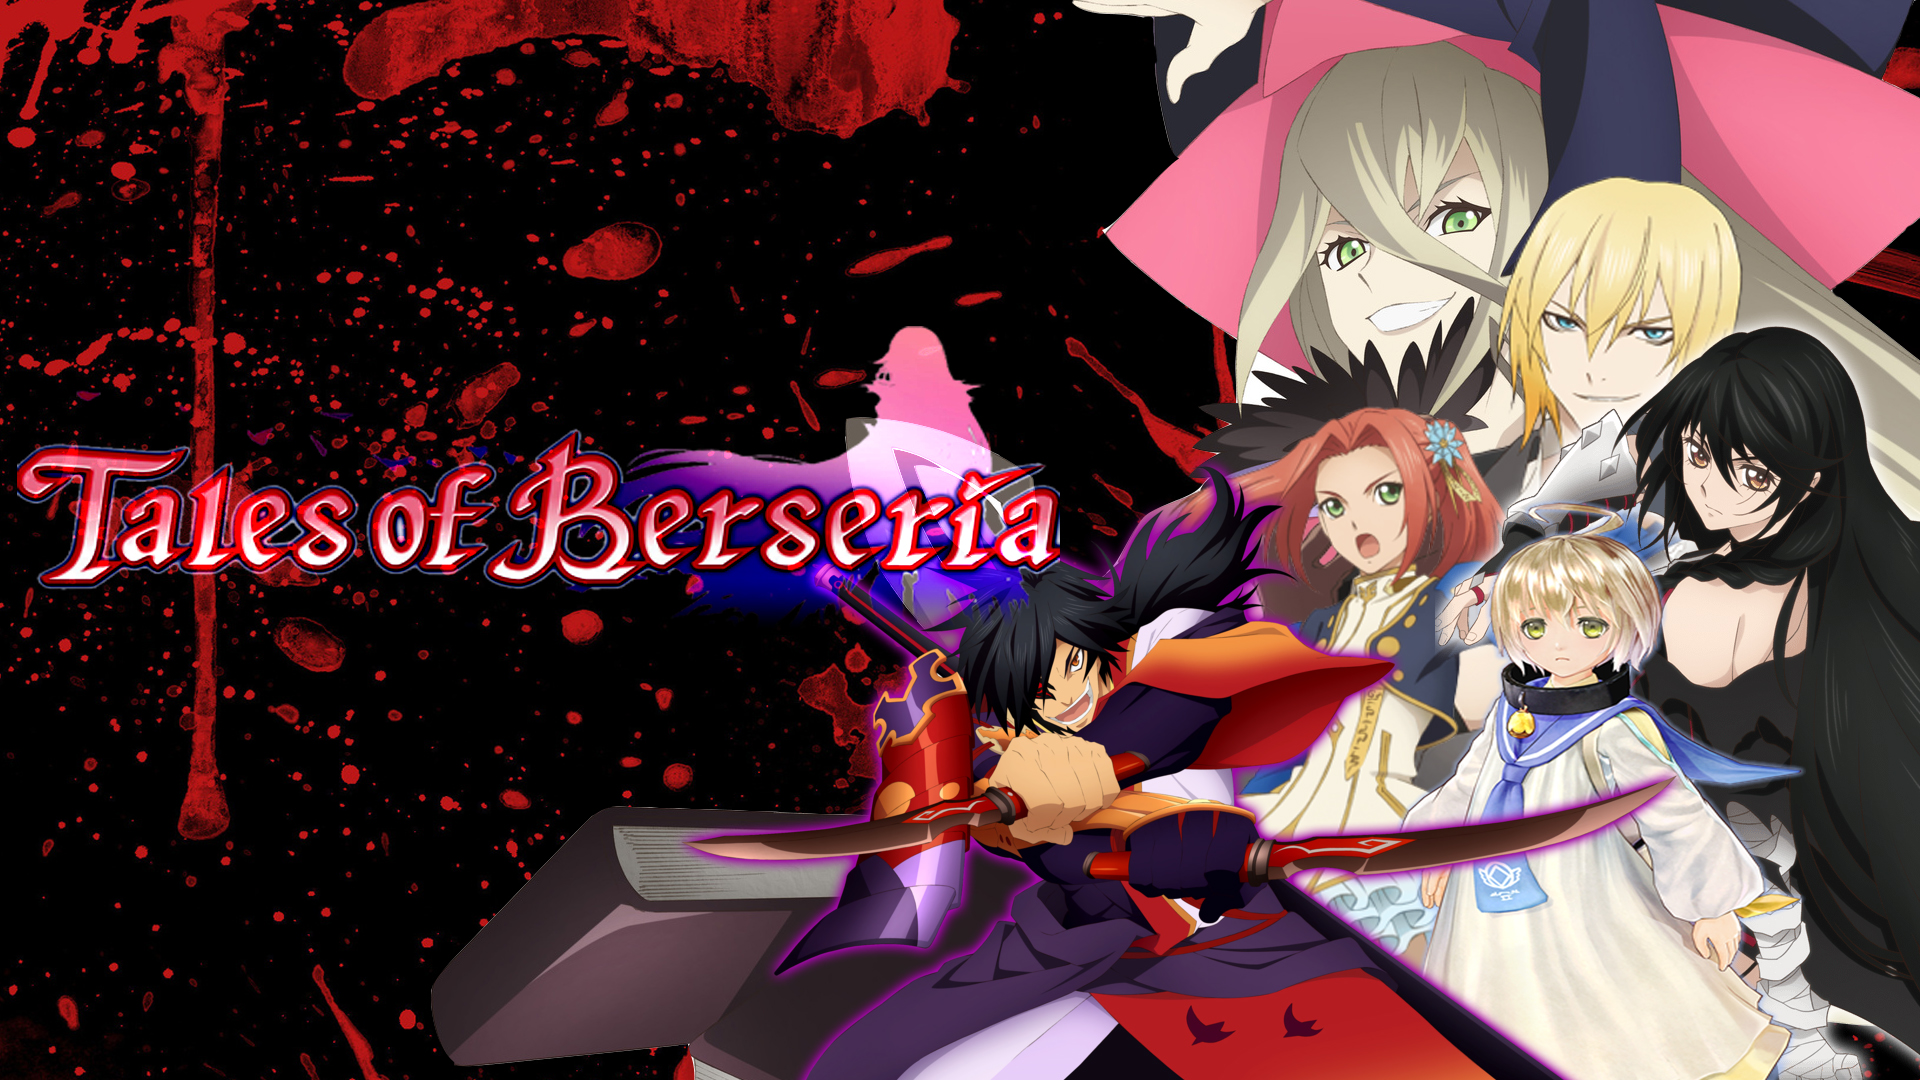 Tales Of Berseria Wallpaper Hd Posted By Zoey Sellers